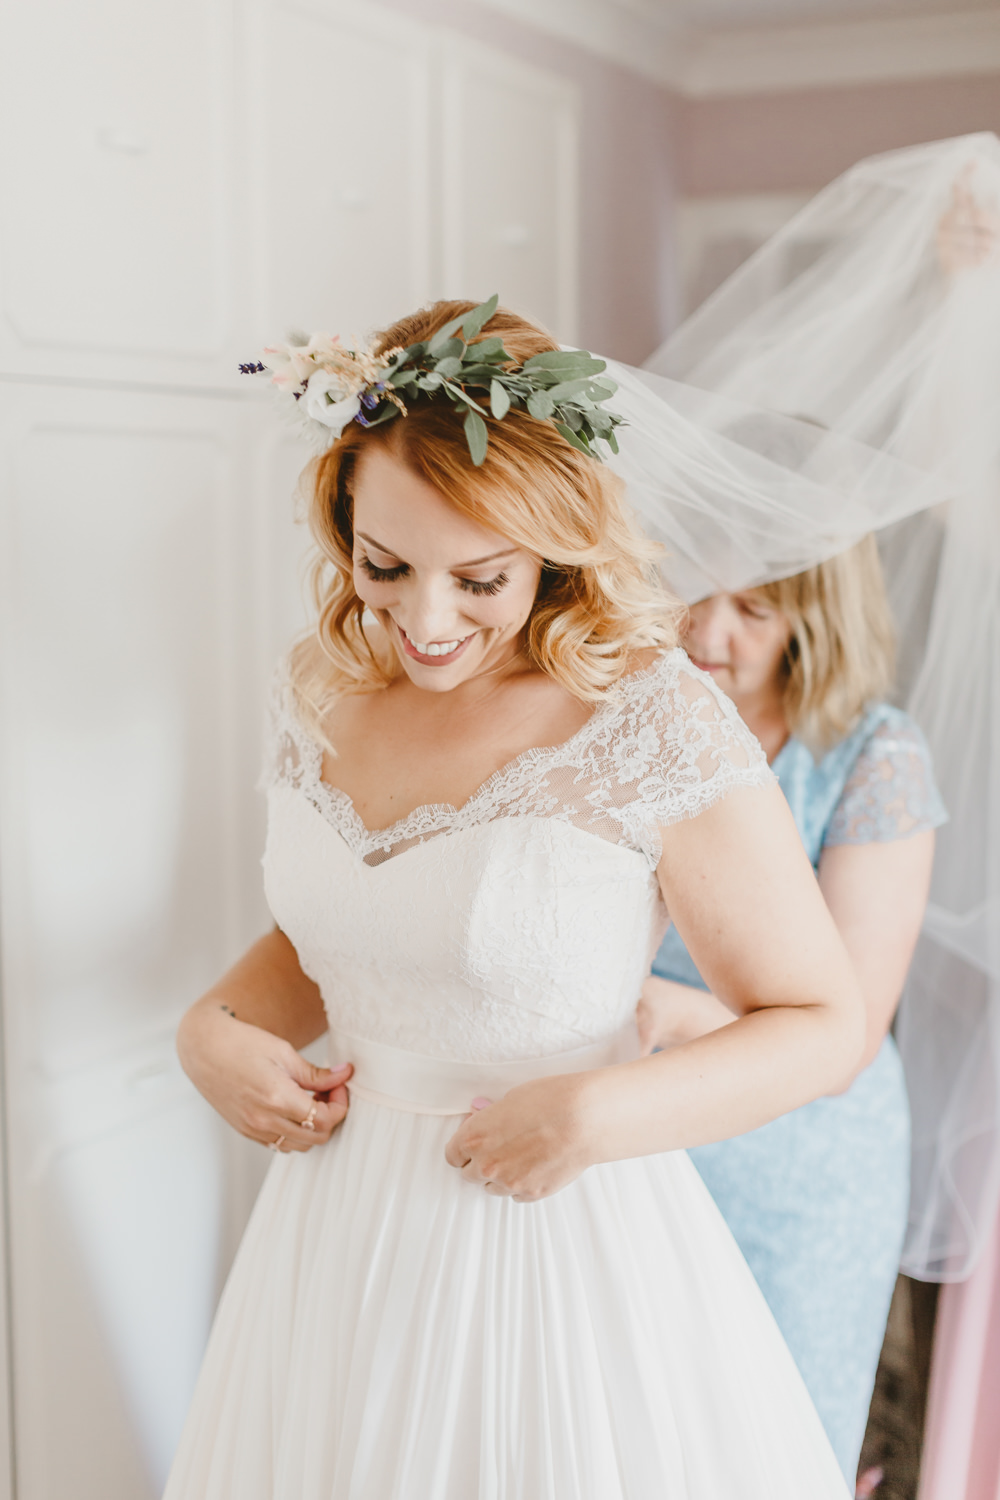 Dress Gown Bride Bridal Naomi Neoh A Line Lace Top Cap Sleeves Flower Crown Veil Wylam Brewery Wedding Amy Lou Photography